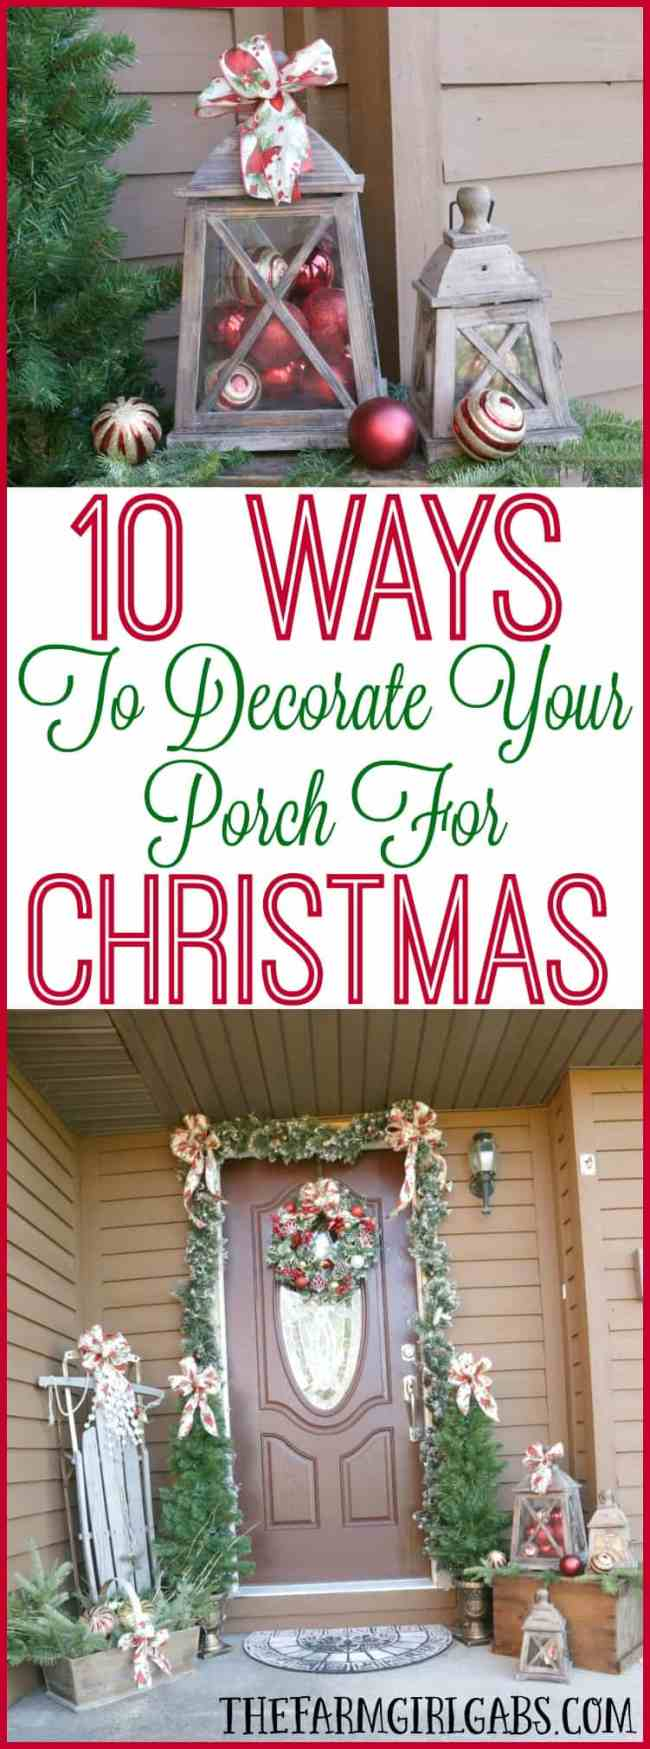 10 Ways To Decorate Your Porch For Christmas The Farm